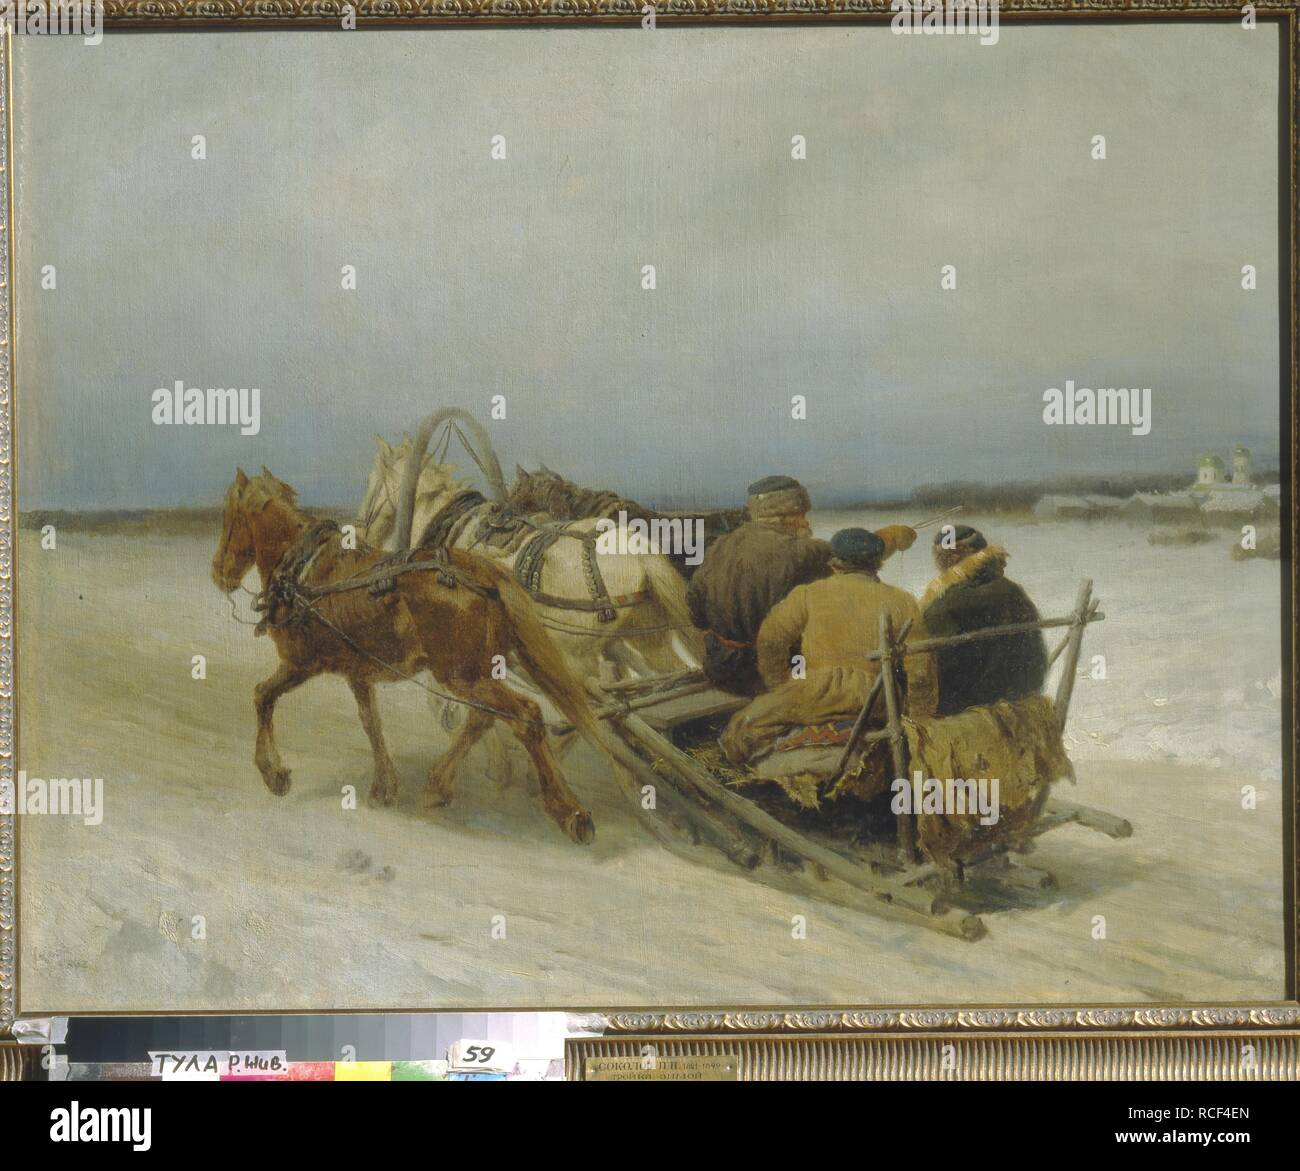 Troika in Winter. Museum: State Art Museum, Tula. Author: Sokolov, Pyotr Petrovich. Stock Photo